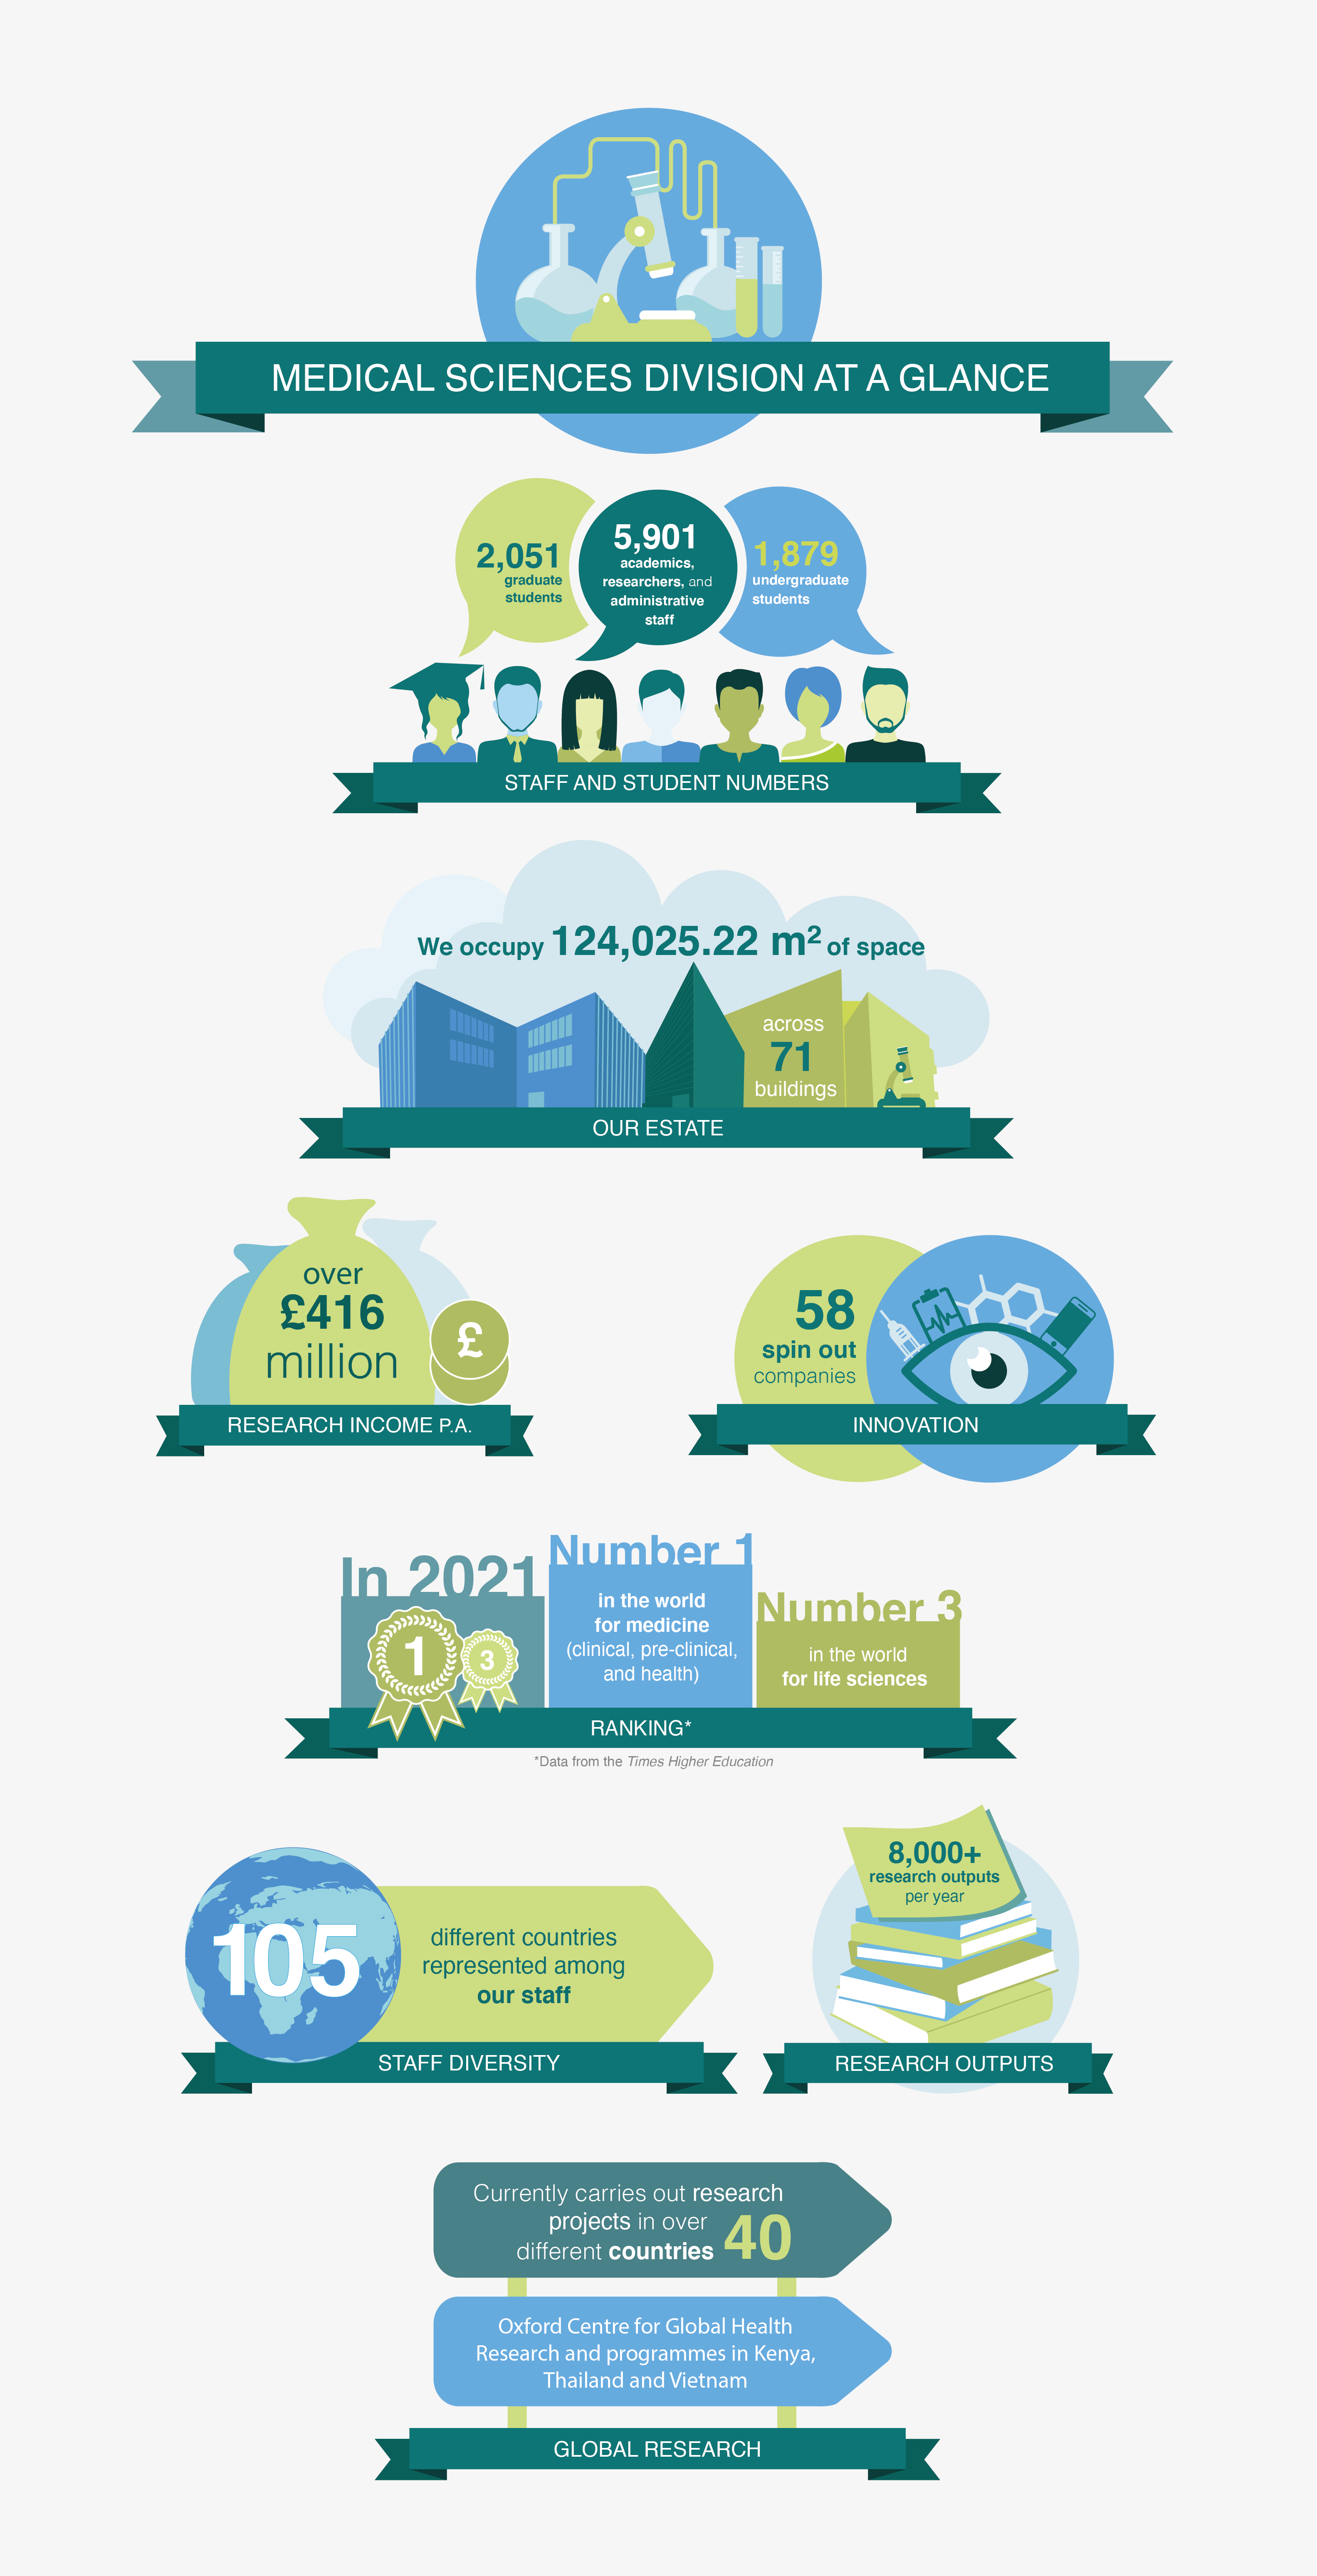 The full text from the infographic can be found in the link below the image